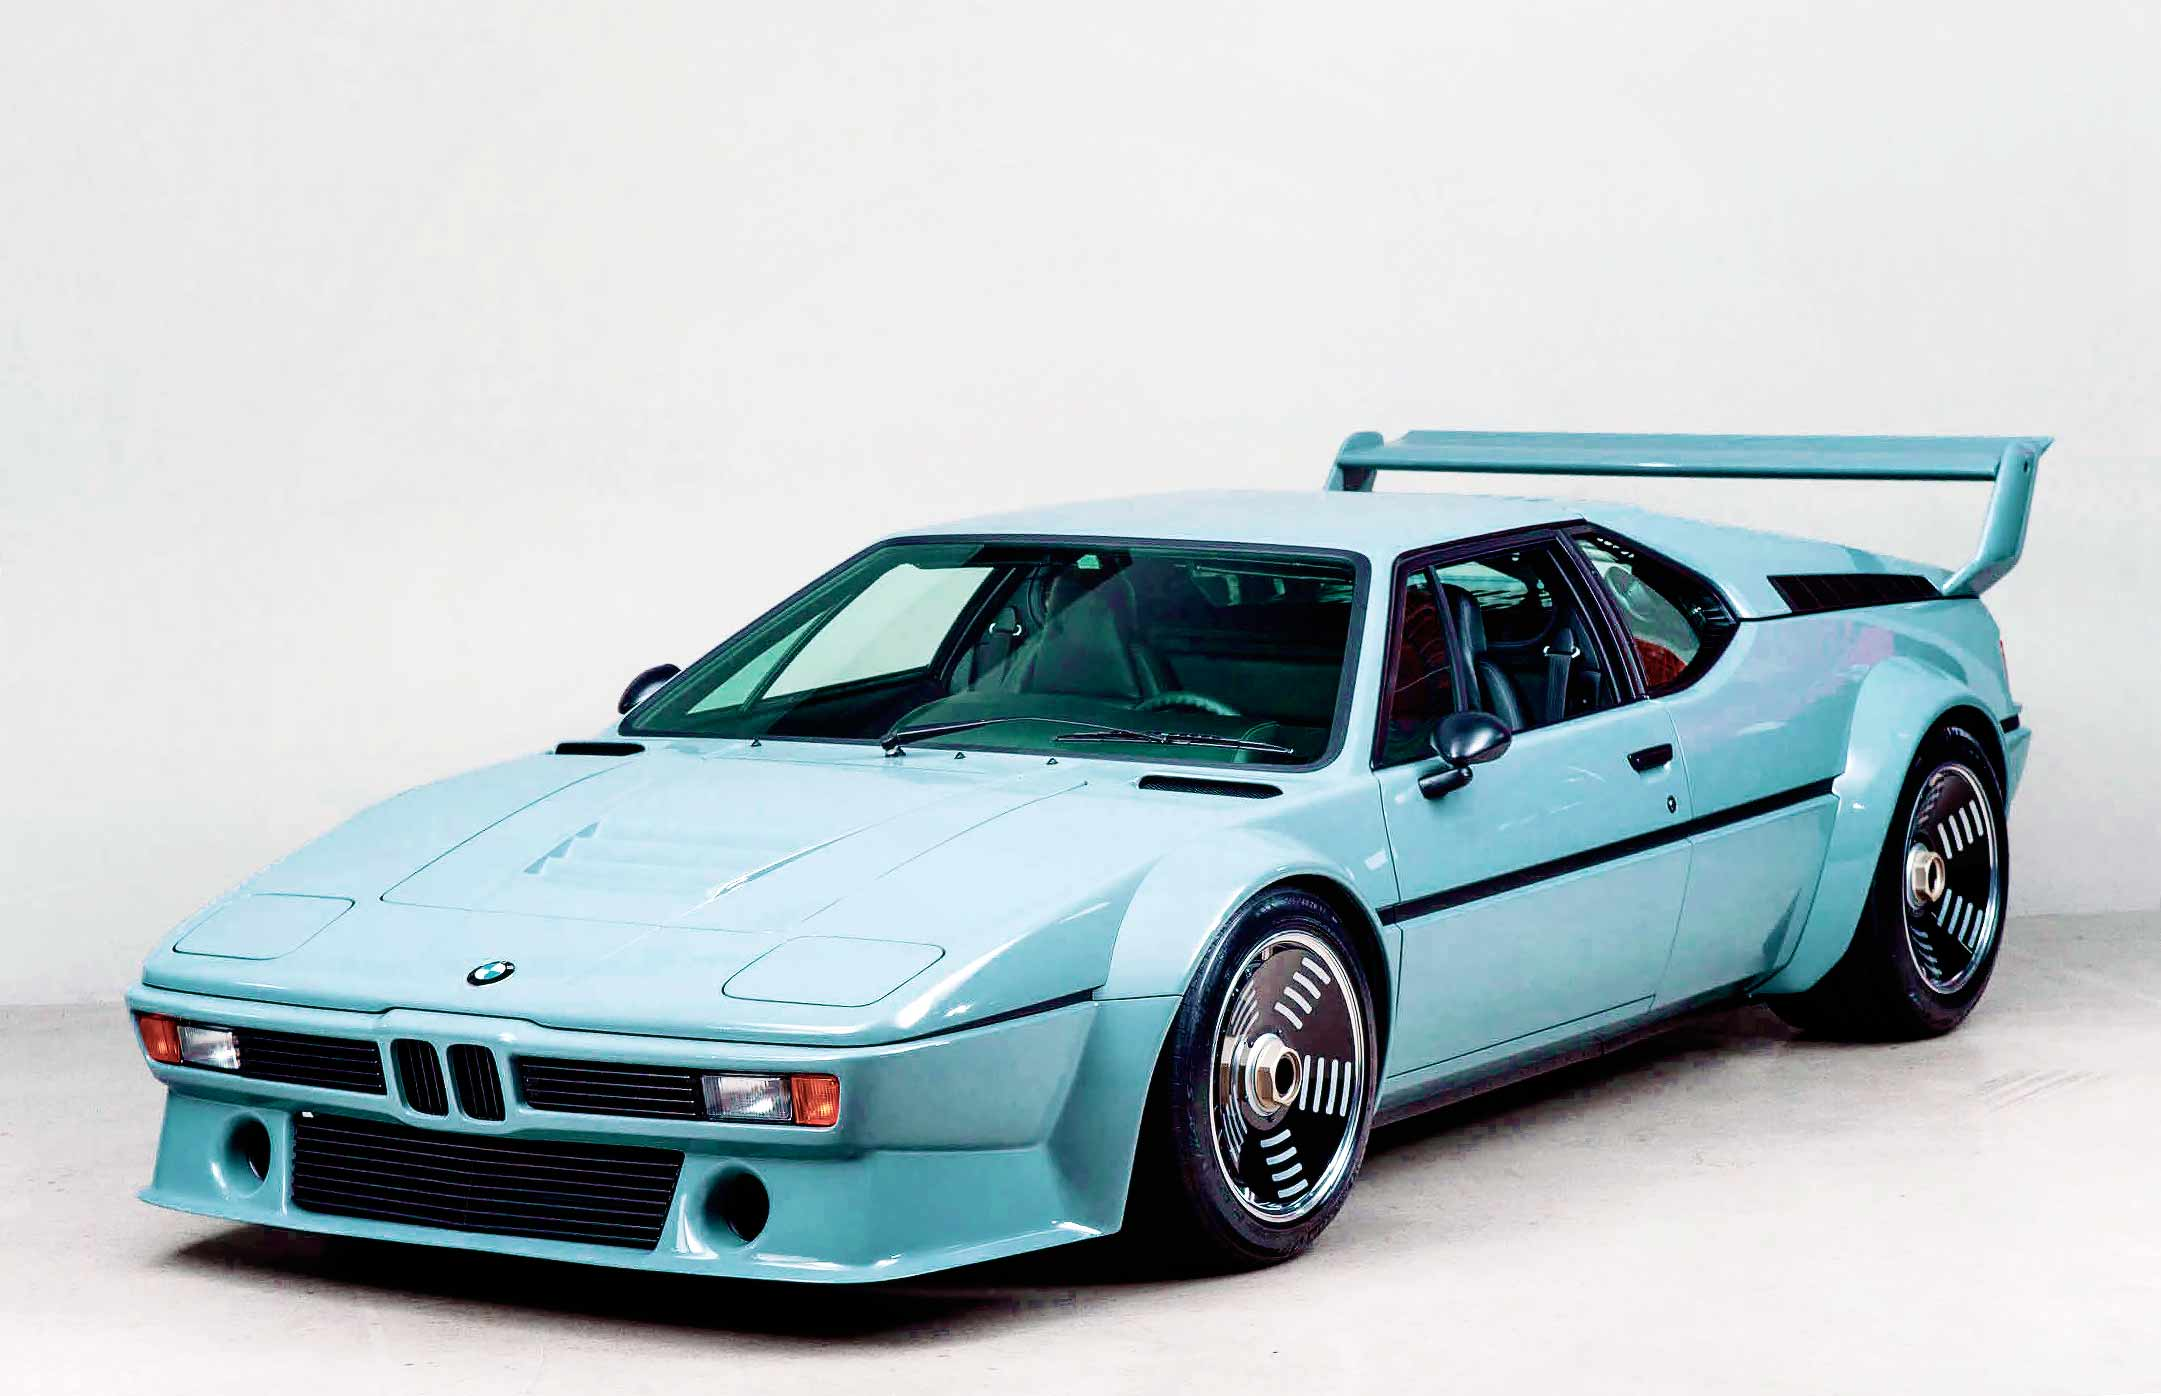 stunning bmw m1 procar e26 drive my blogs drive. Black Bedroom Furniture Sets. Home Design Ideas